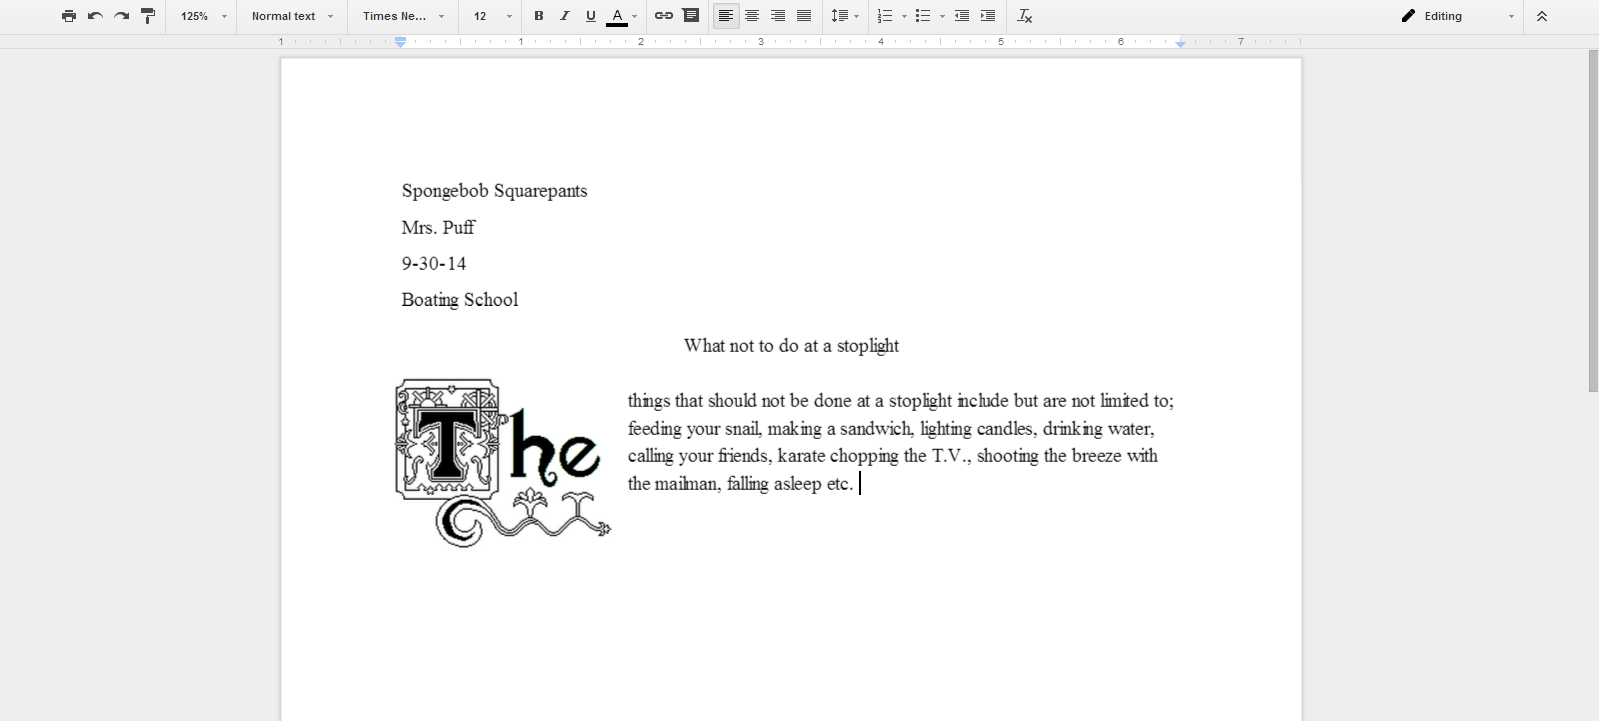 004 H6so62h Spongebob The Essay Font Top Name Copy And Paste Full